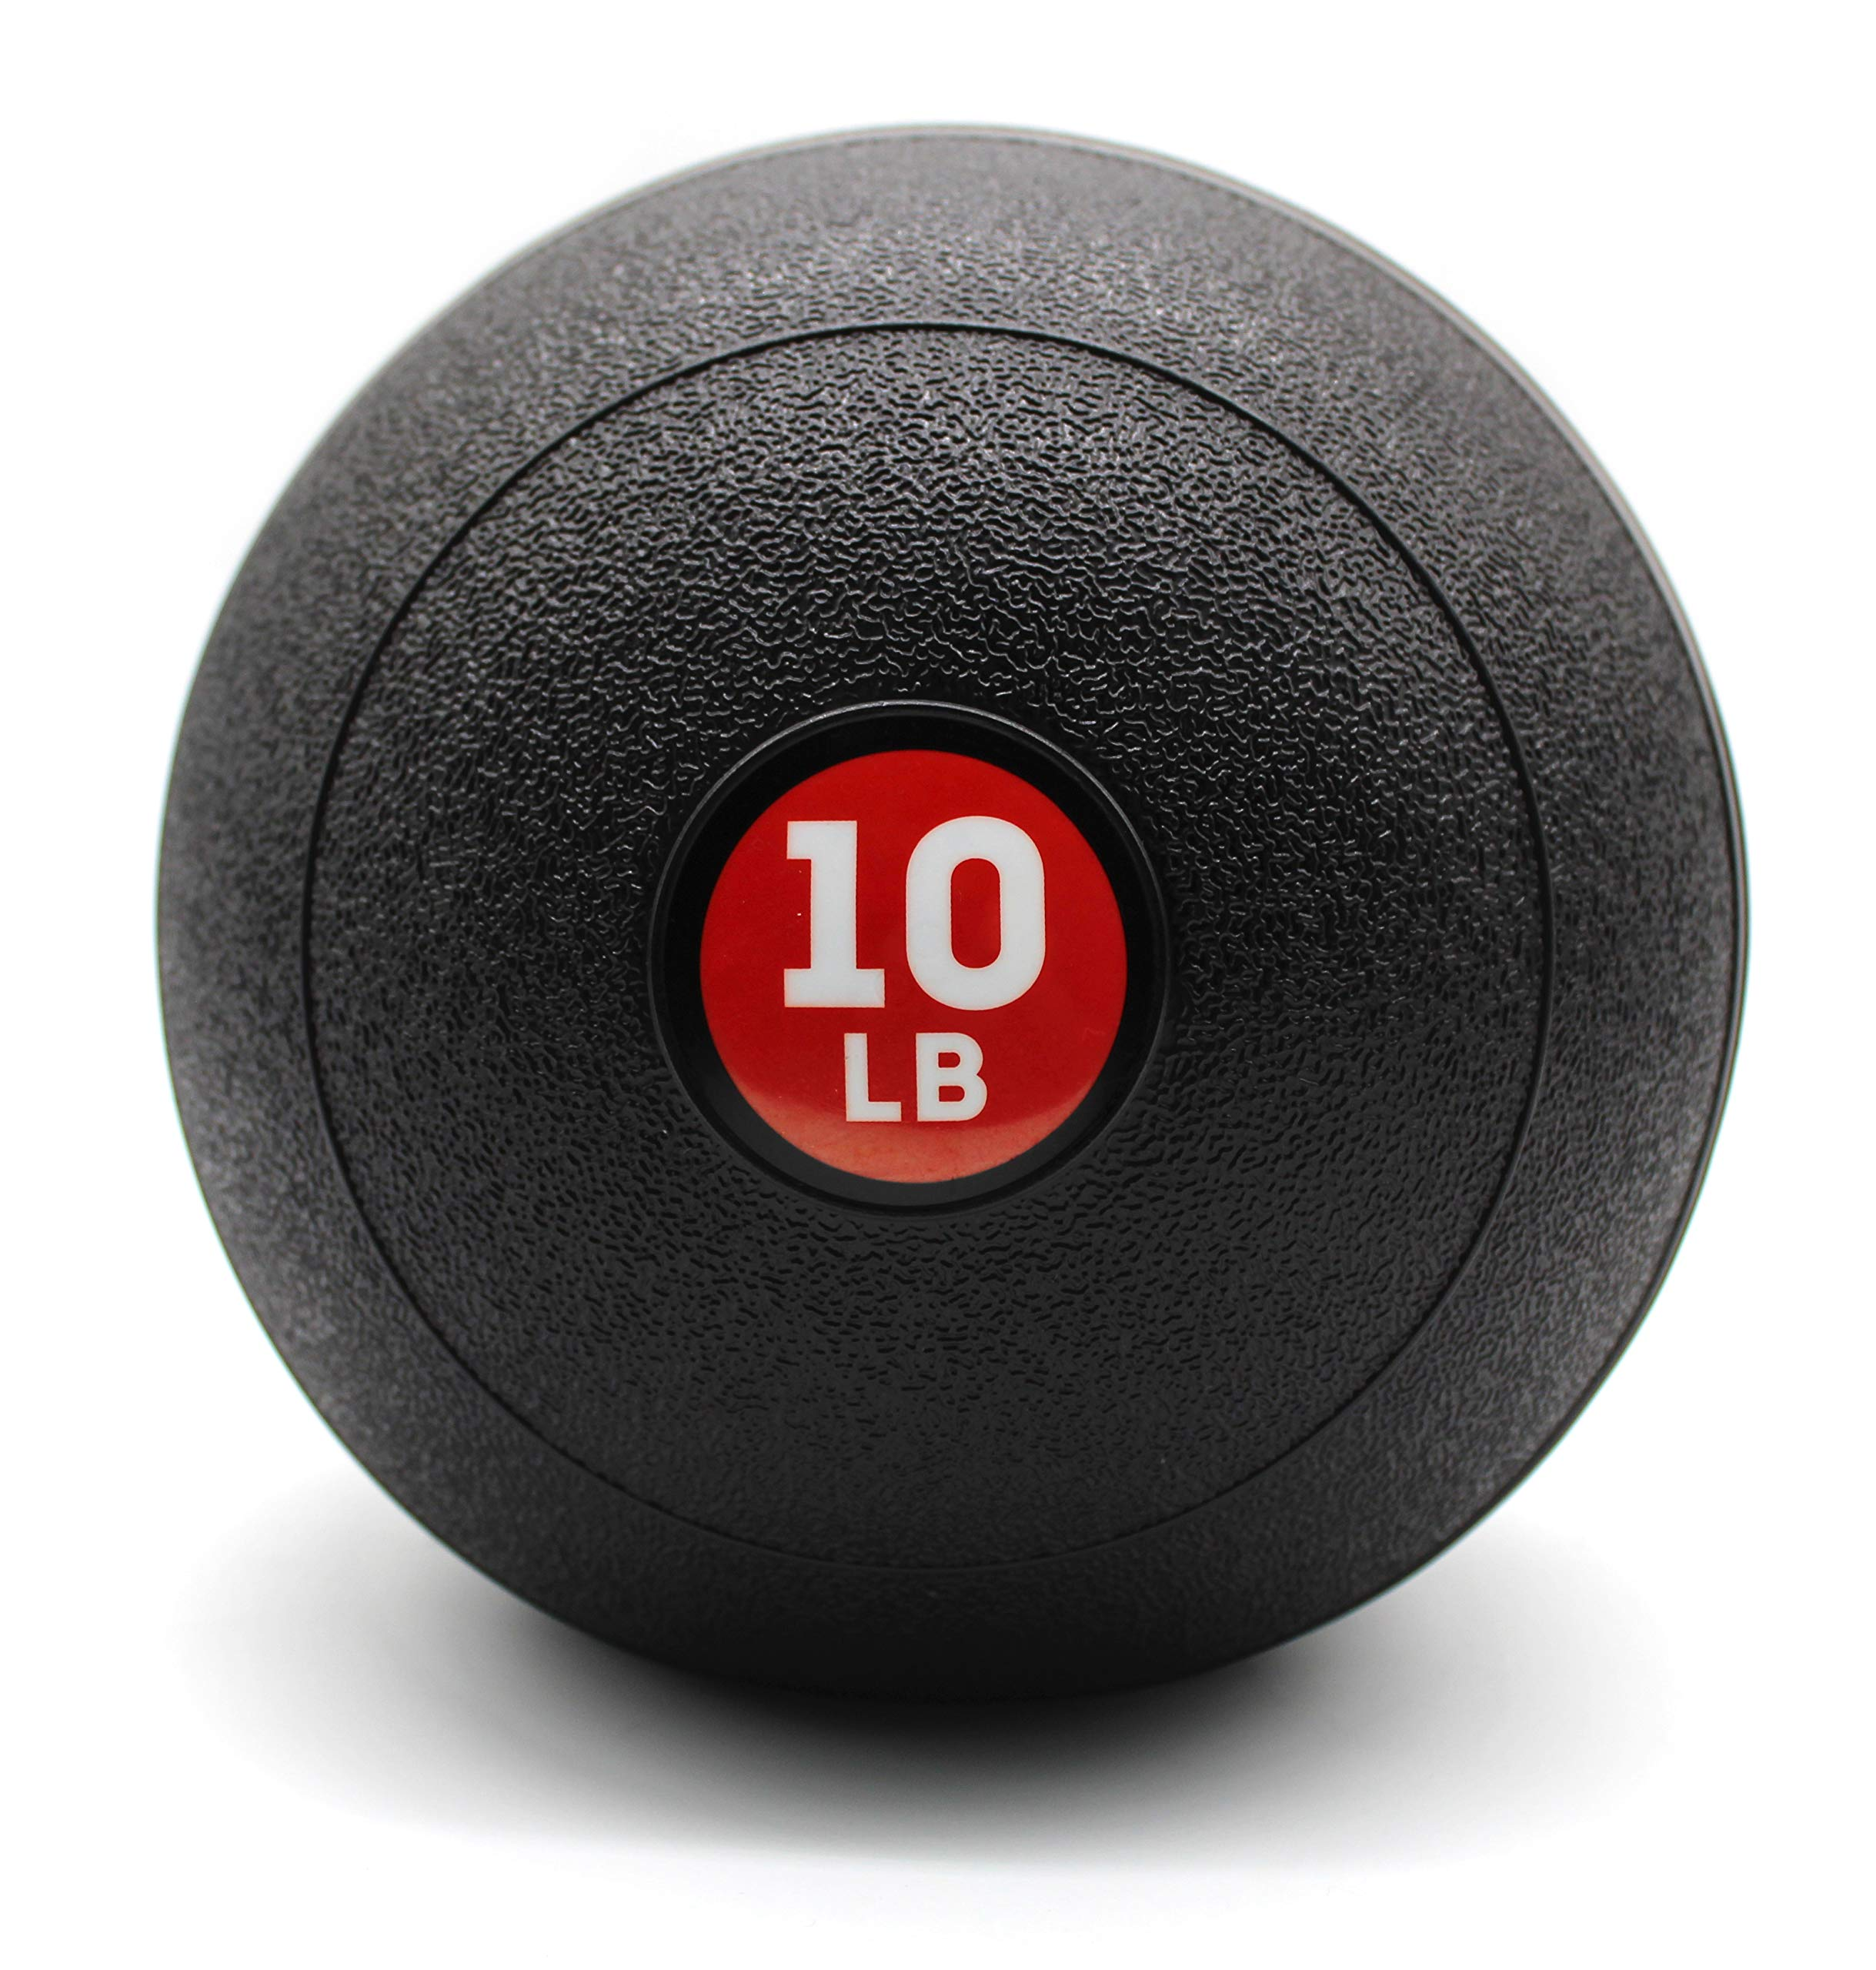 Musbewell Slam Ball Medicine Ball 10 lb, Ideal for Cross Training, Core Exercises, Plyometric and Cardio Workouts